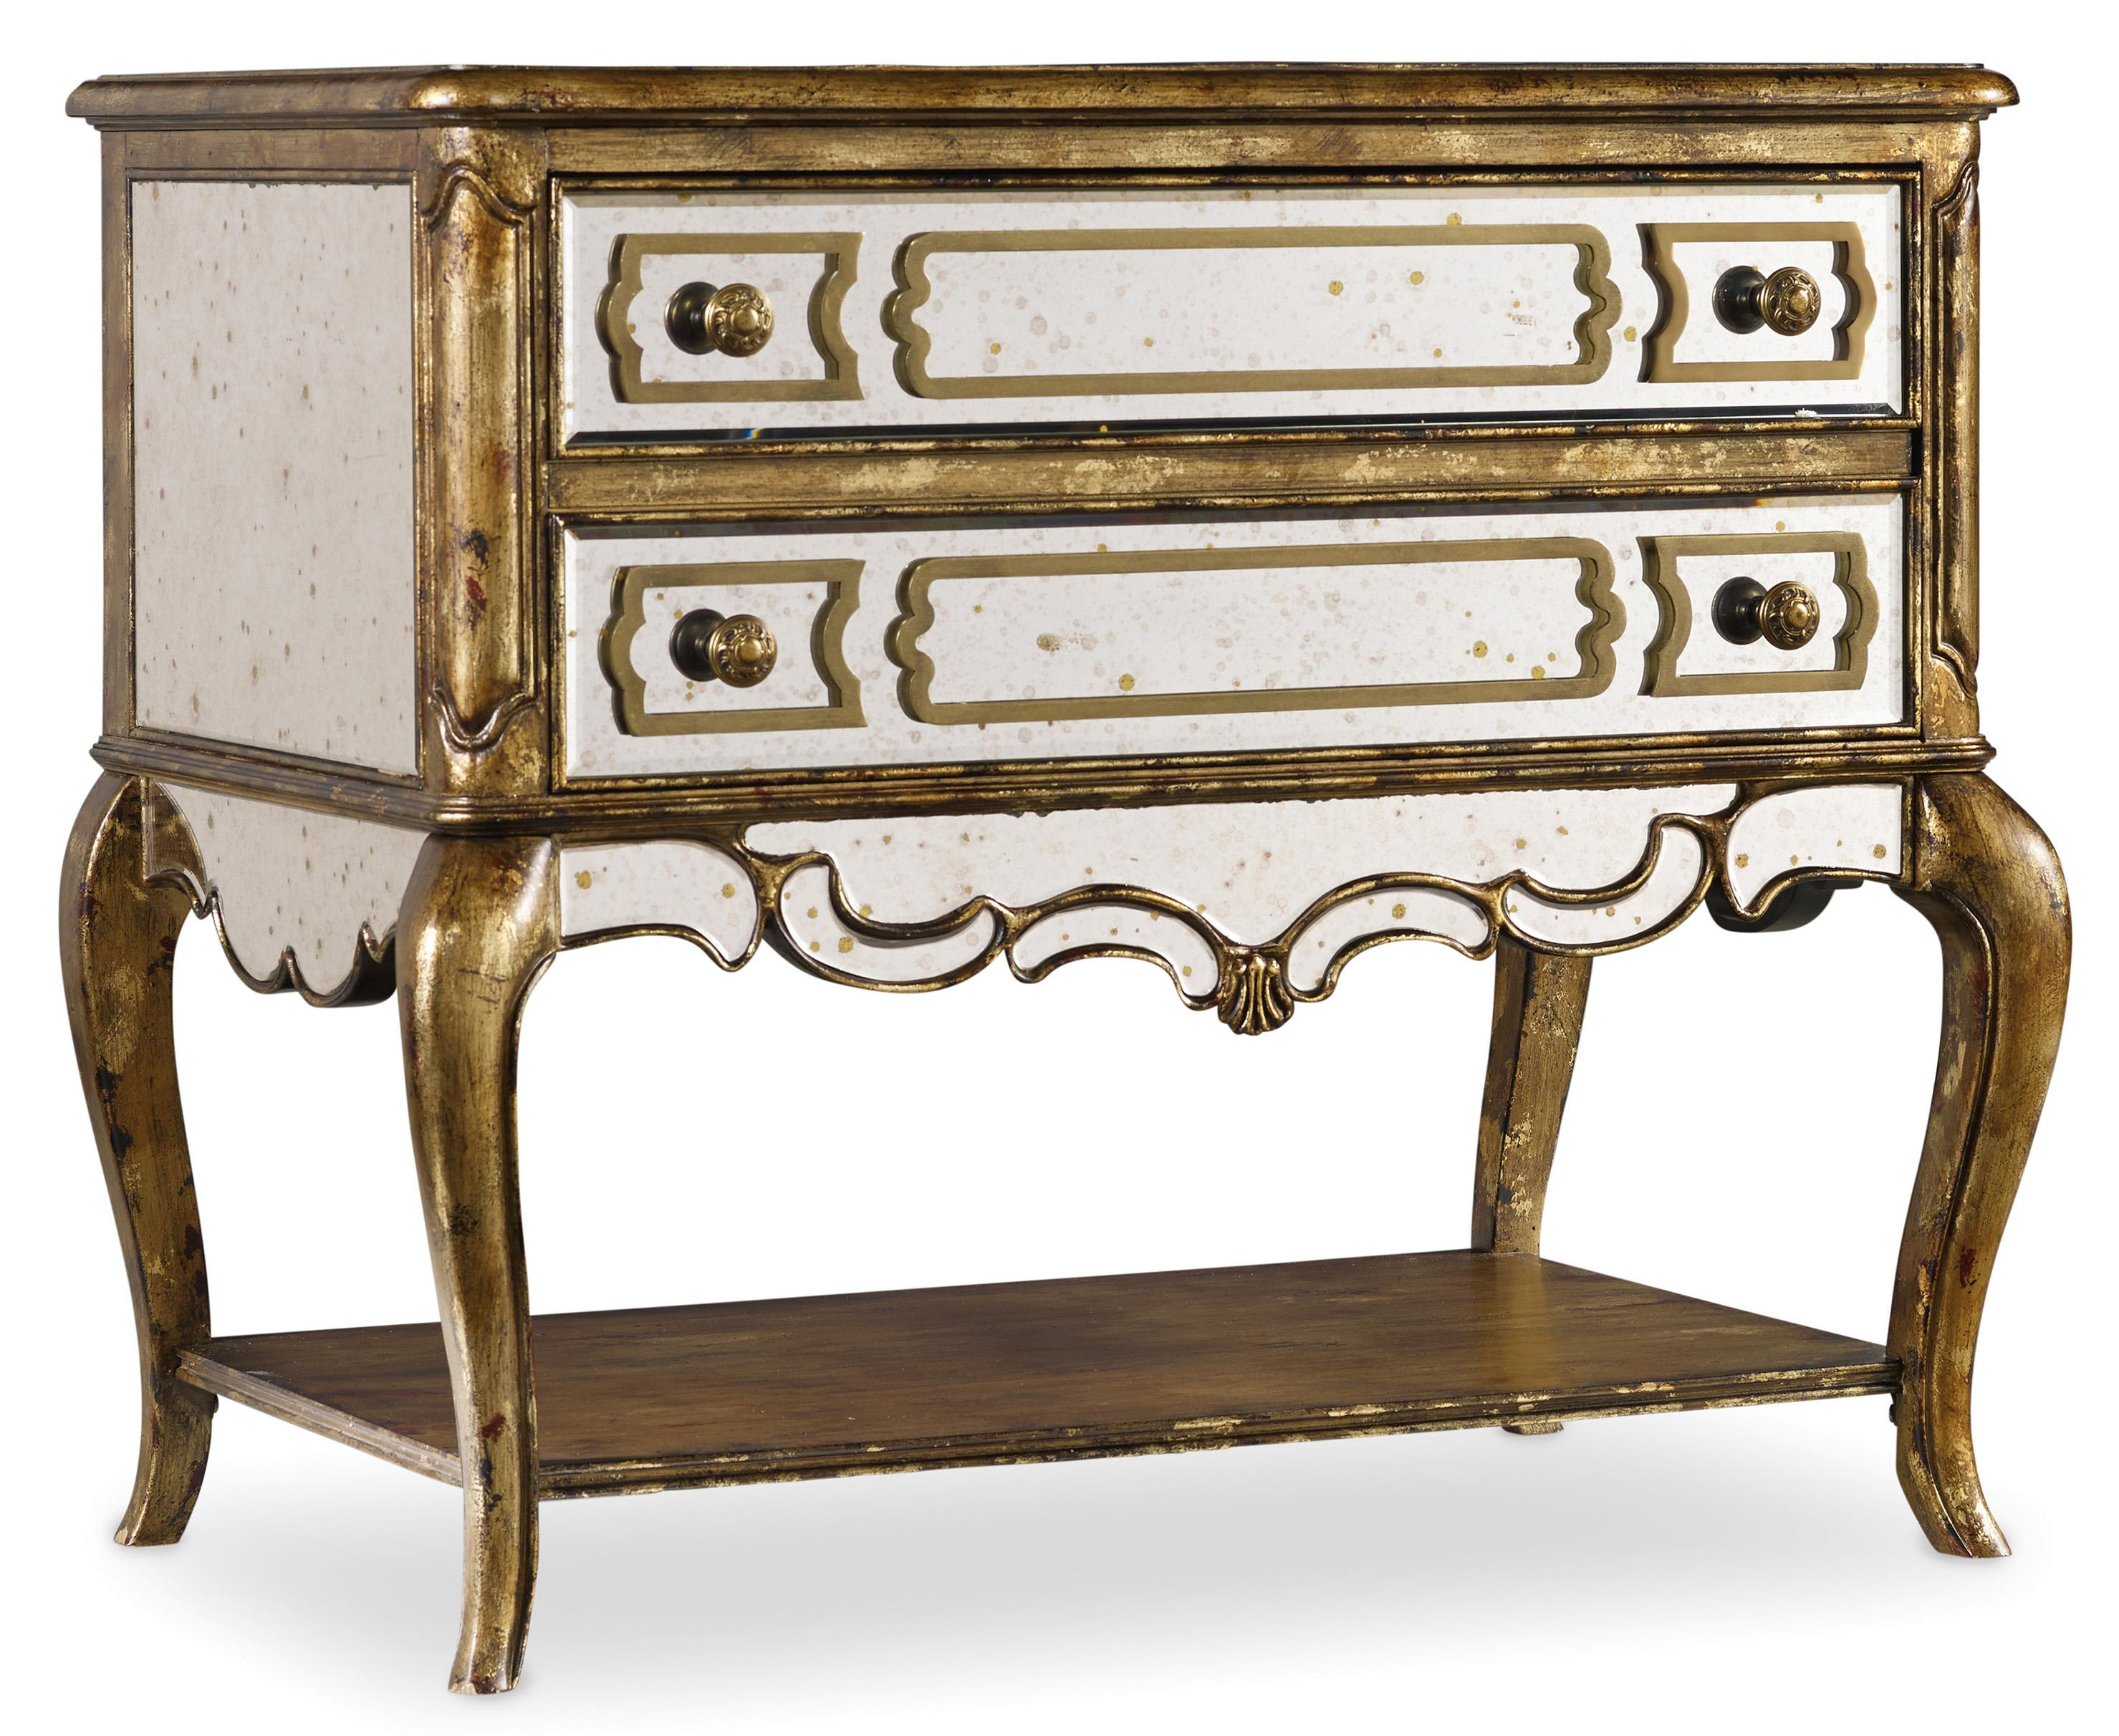 Hooker Furniture 5199 Mirrored File Chest - Item Number: 5199-10485